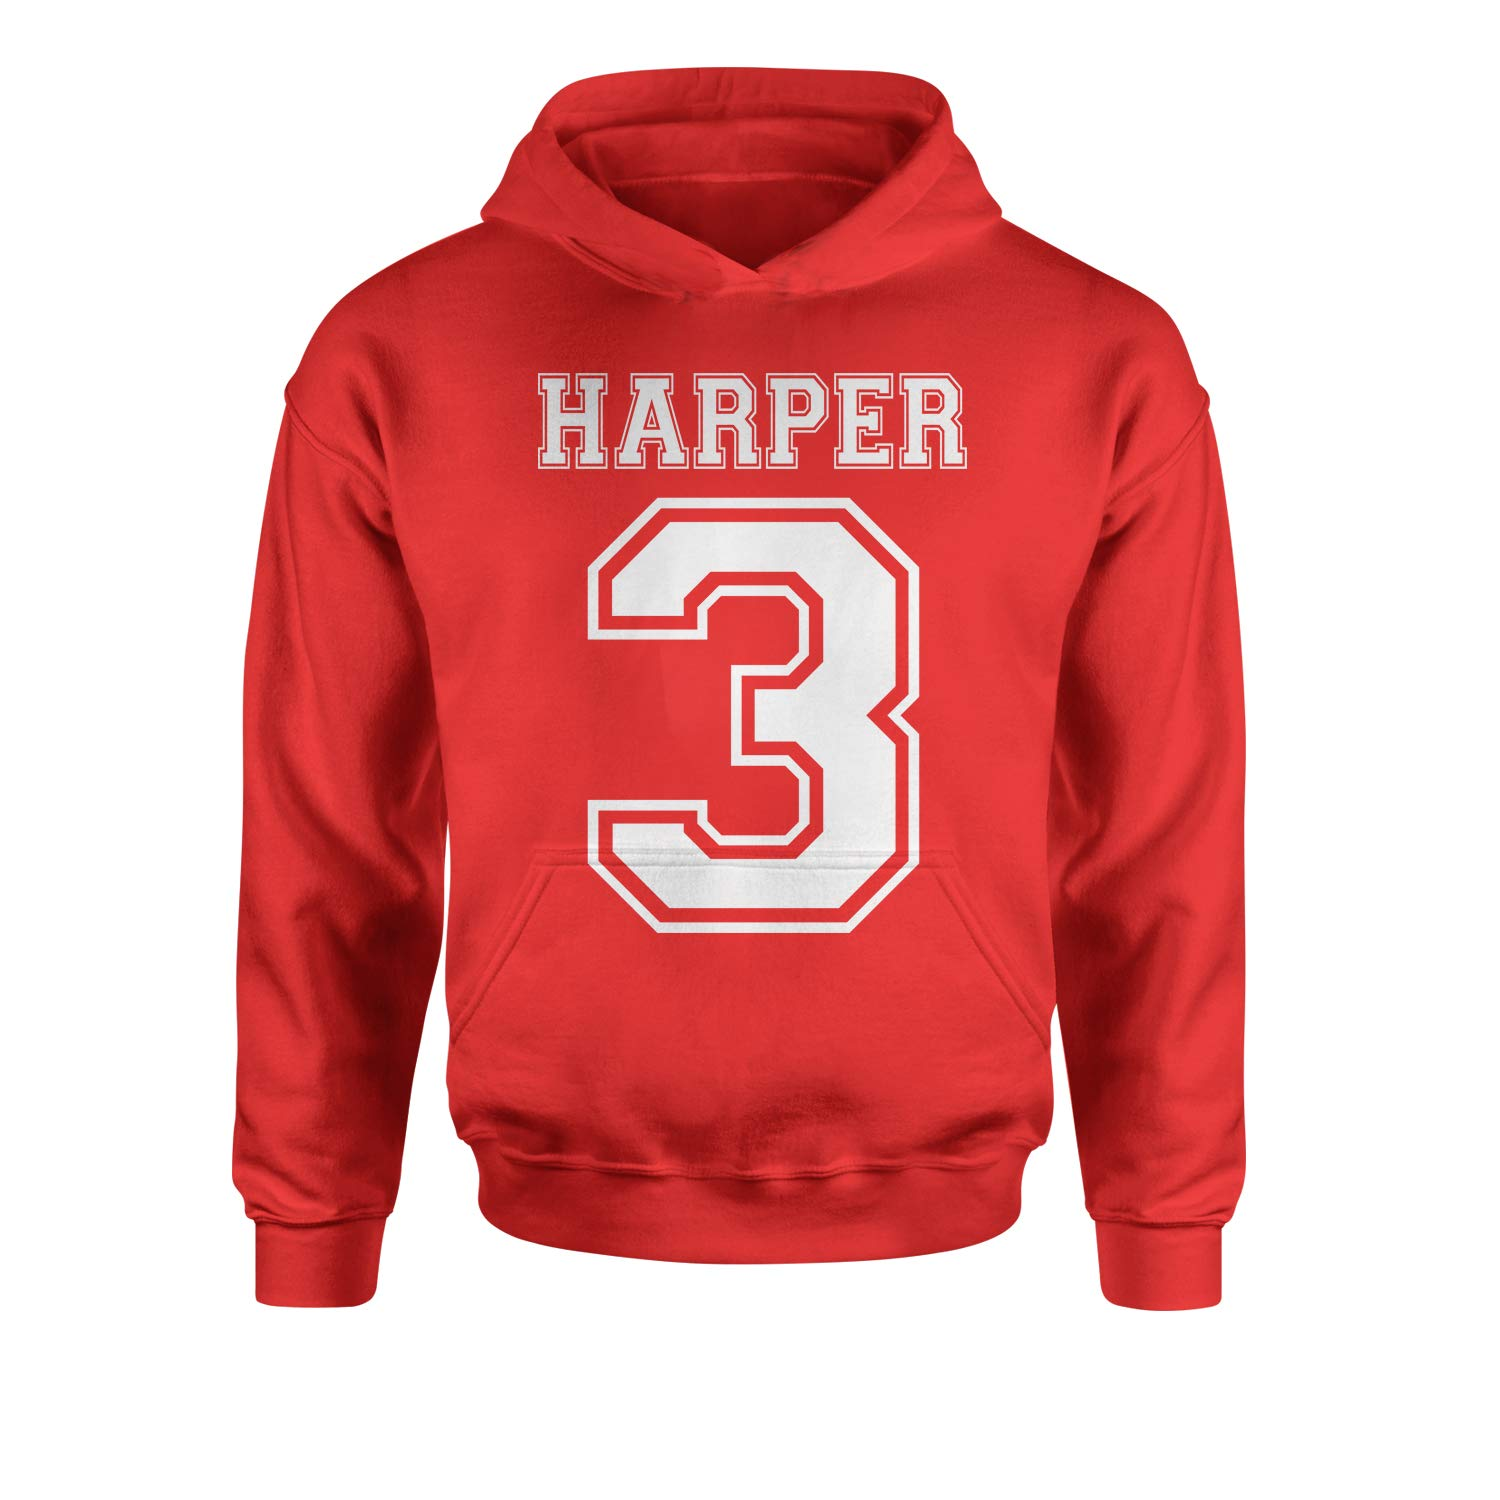 Expression Tees Harper 3 Baseball Youth-Sized Hoodie